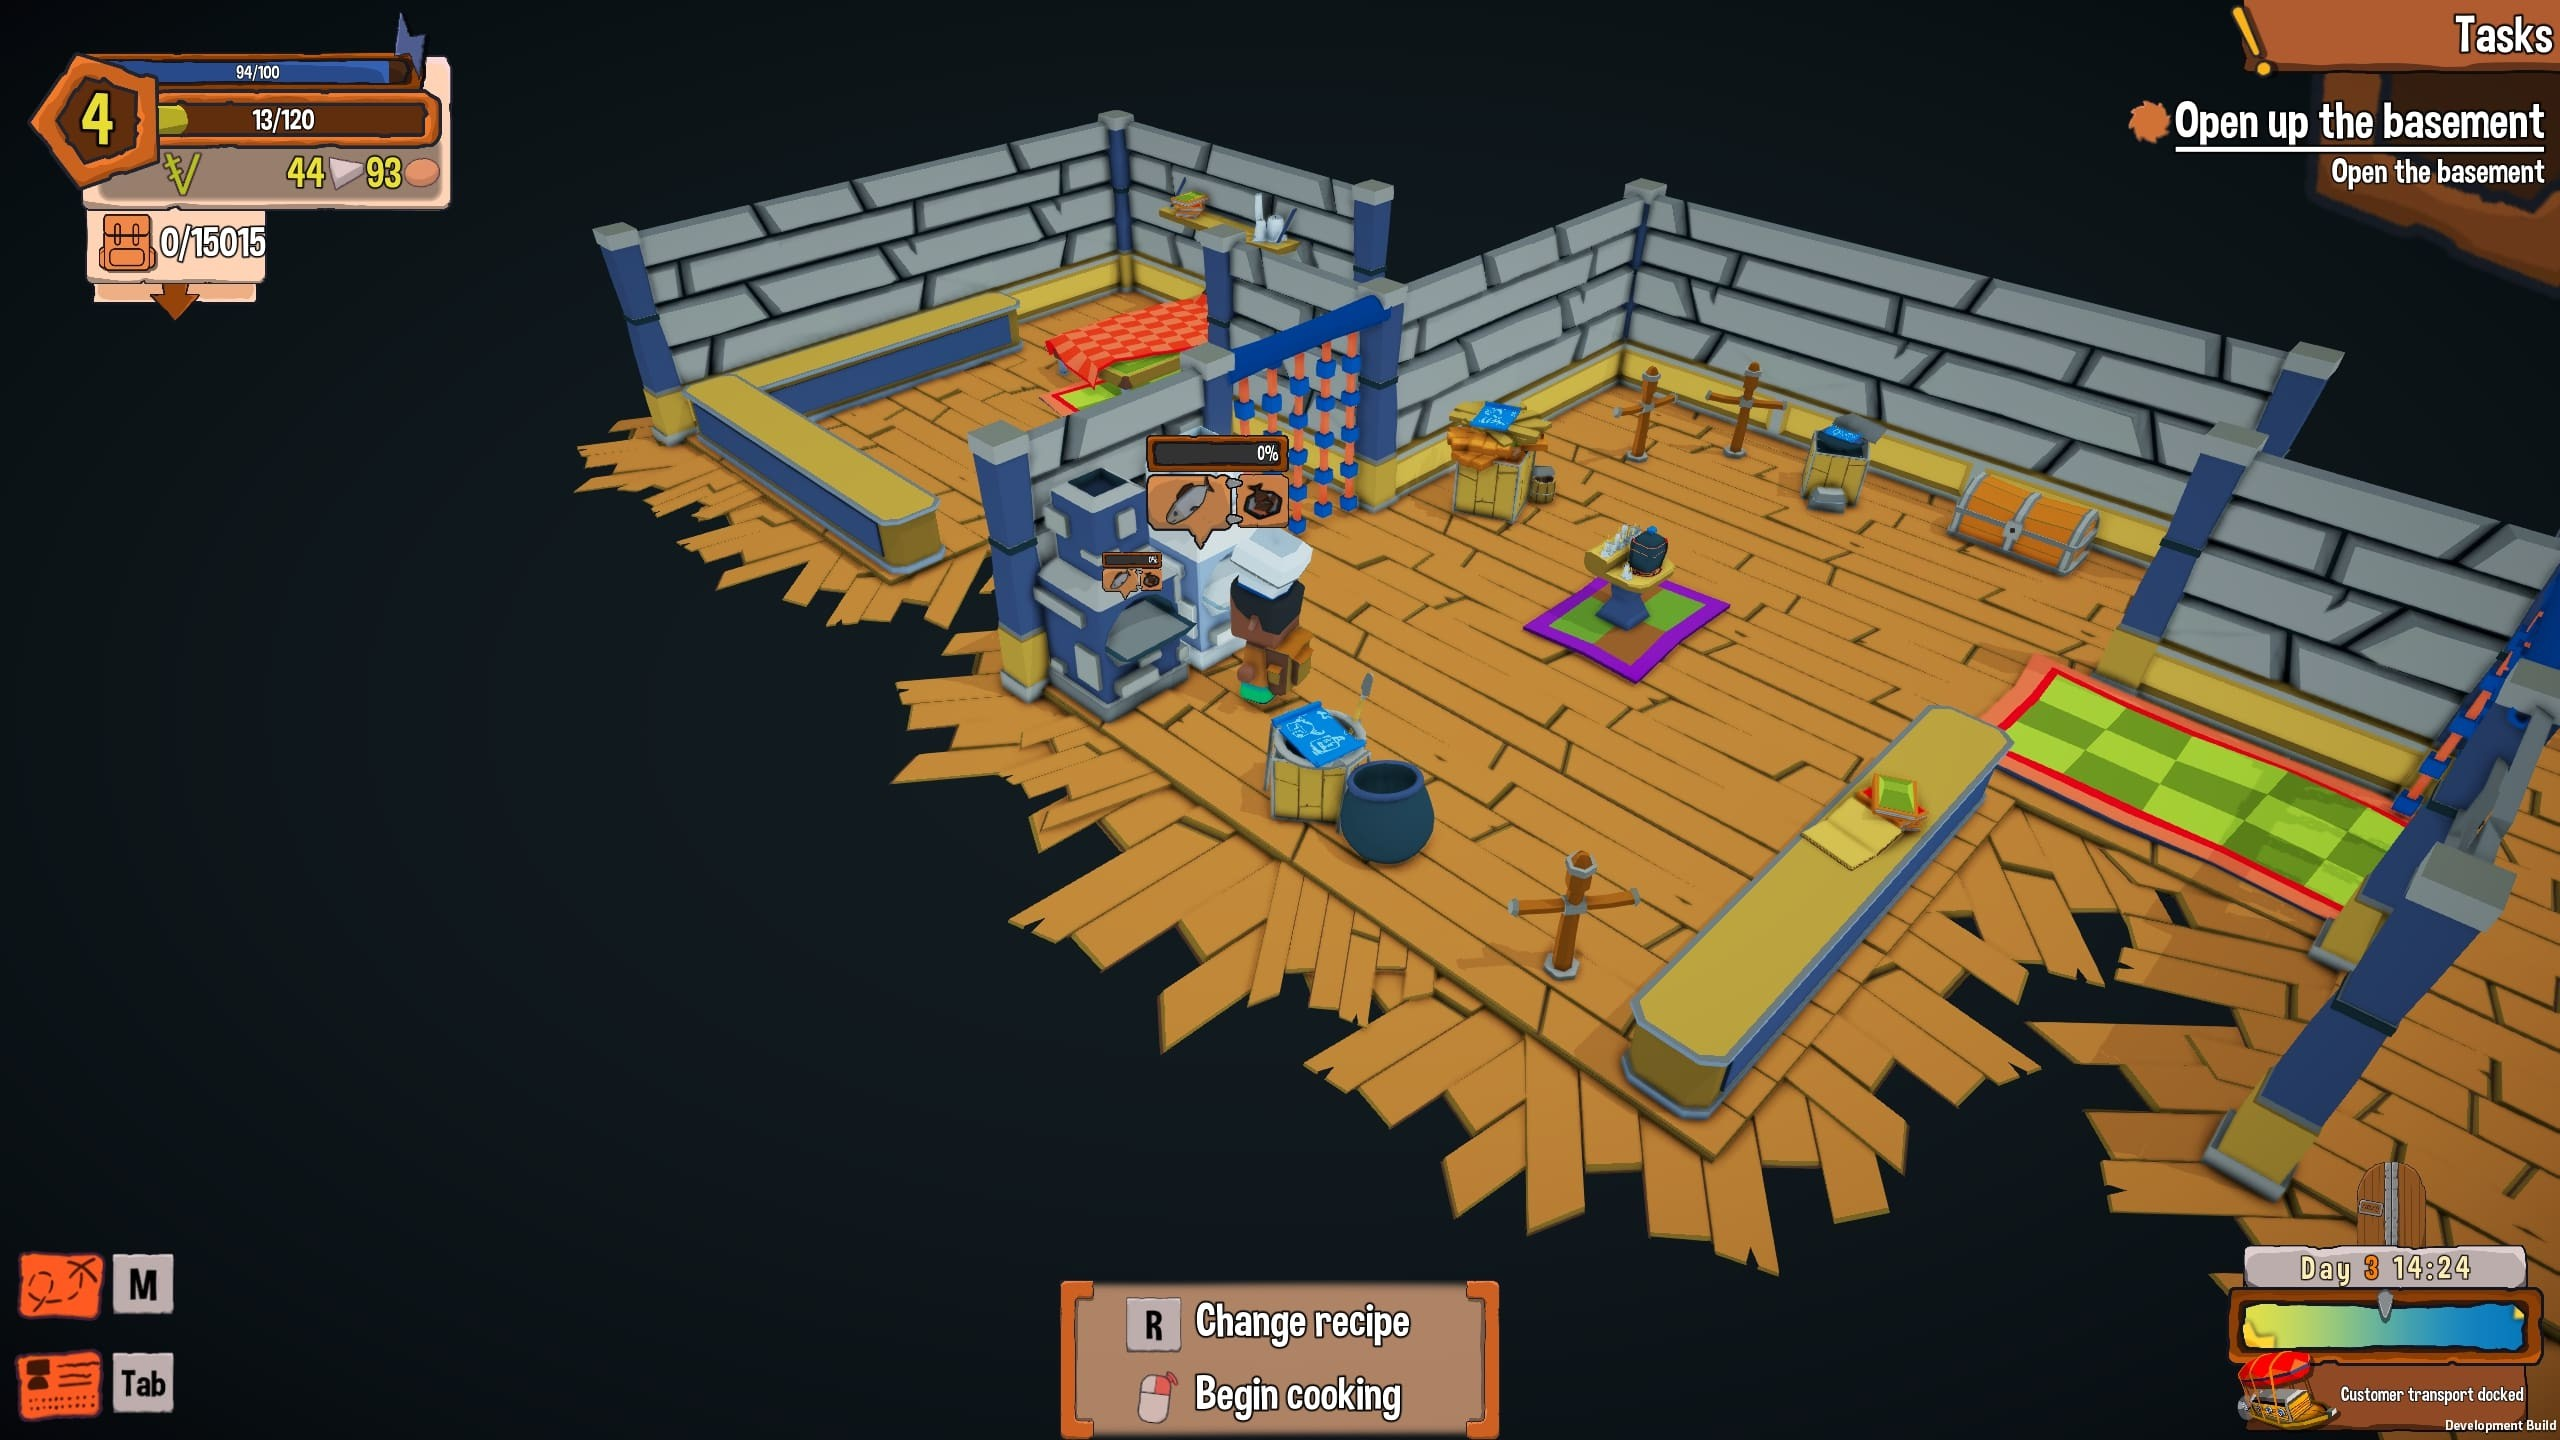 Craftlands Workshoppe - The Funny Indie Capitalist RPG Trading Adventure Game screenshot